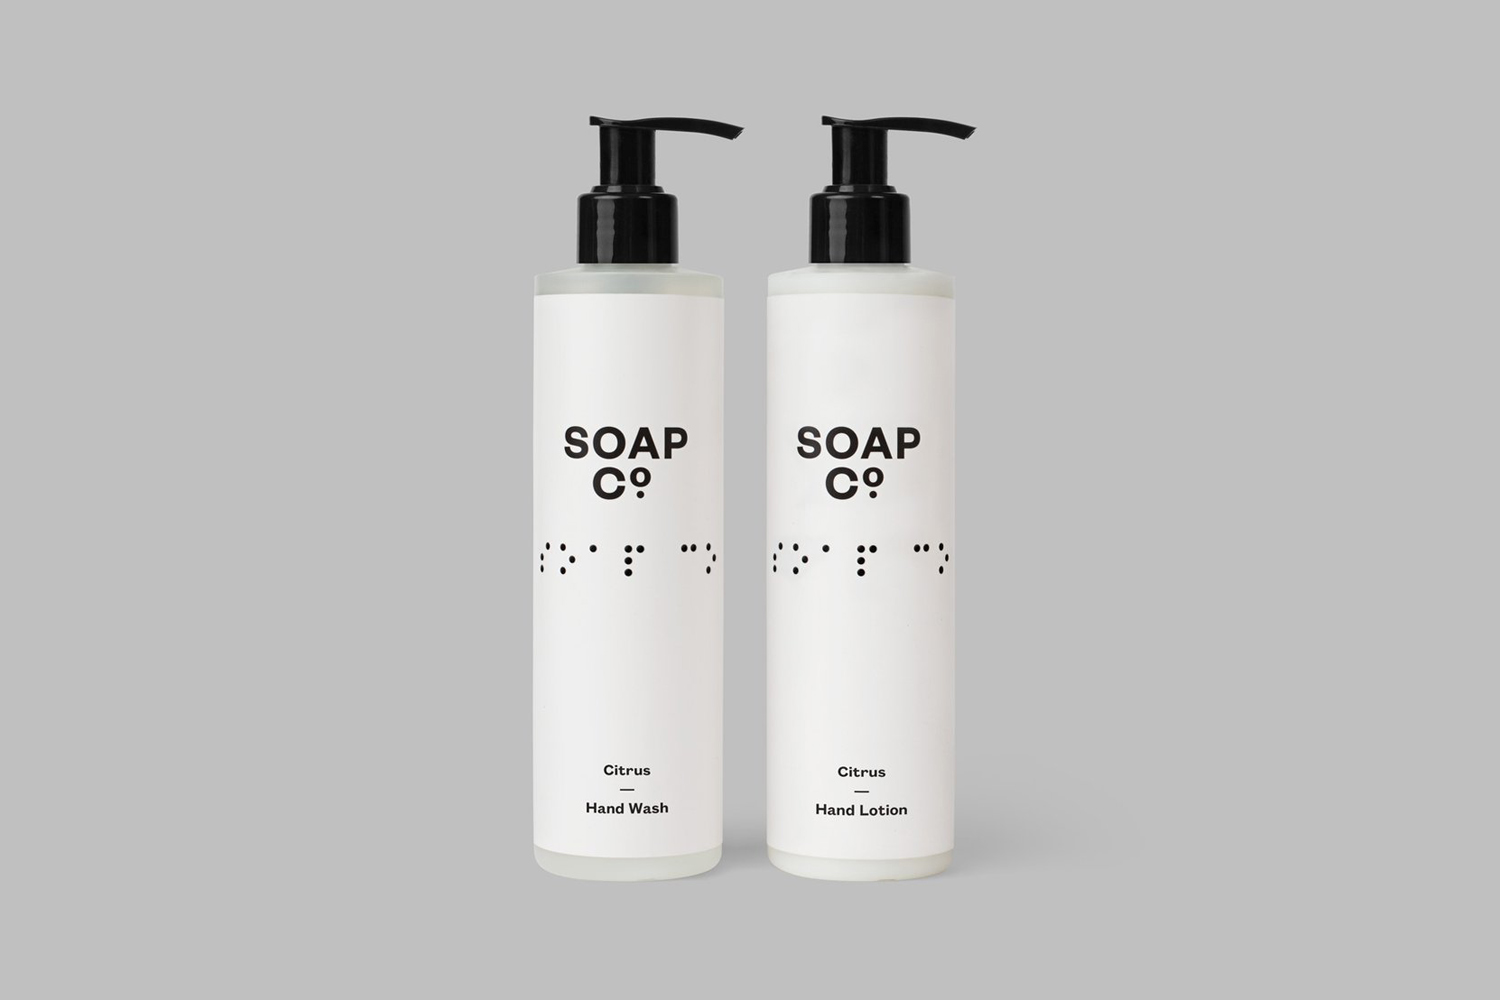 Logo and package design by UK based graphic design studio Paul Balford Ltd. for luxury hand made soap business the Soap Co.